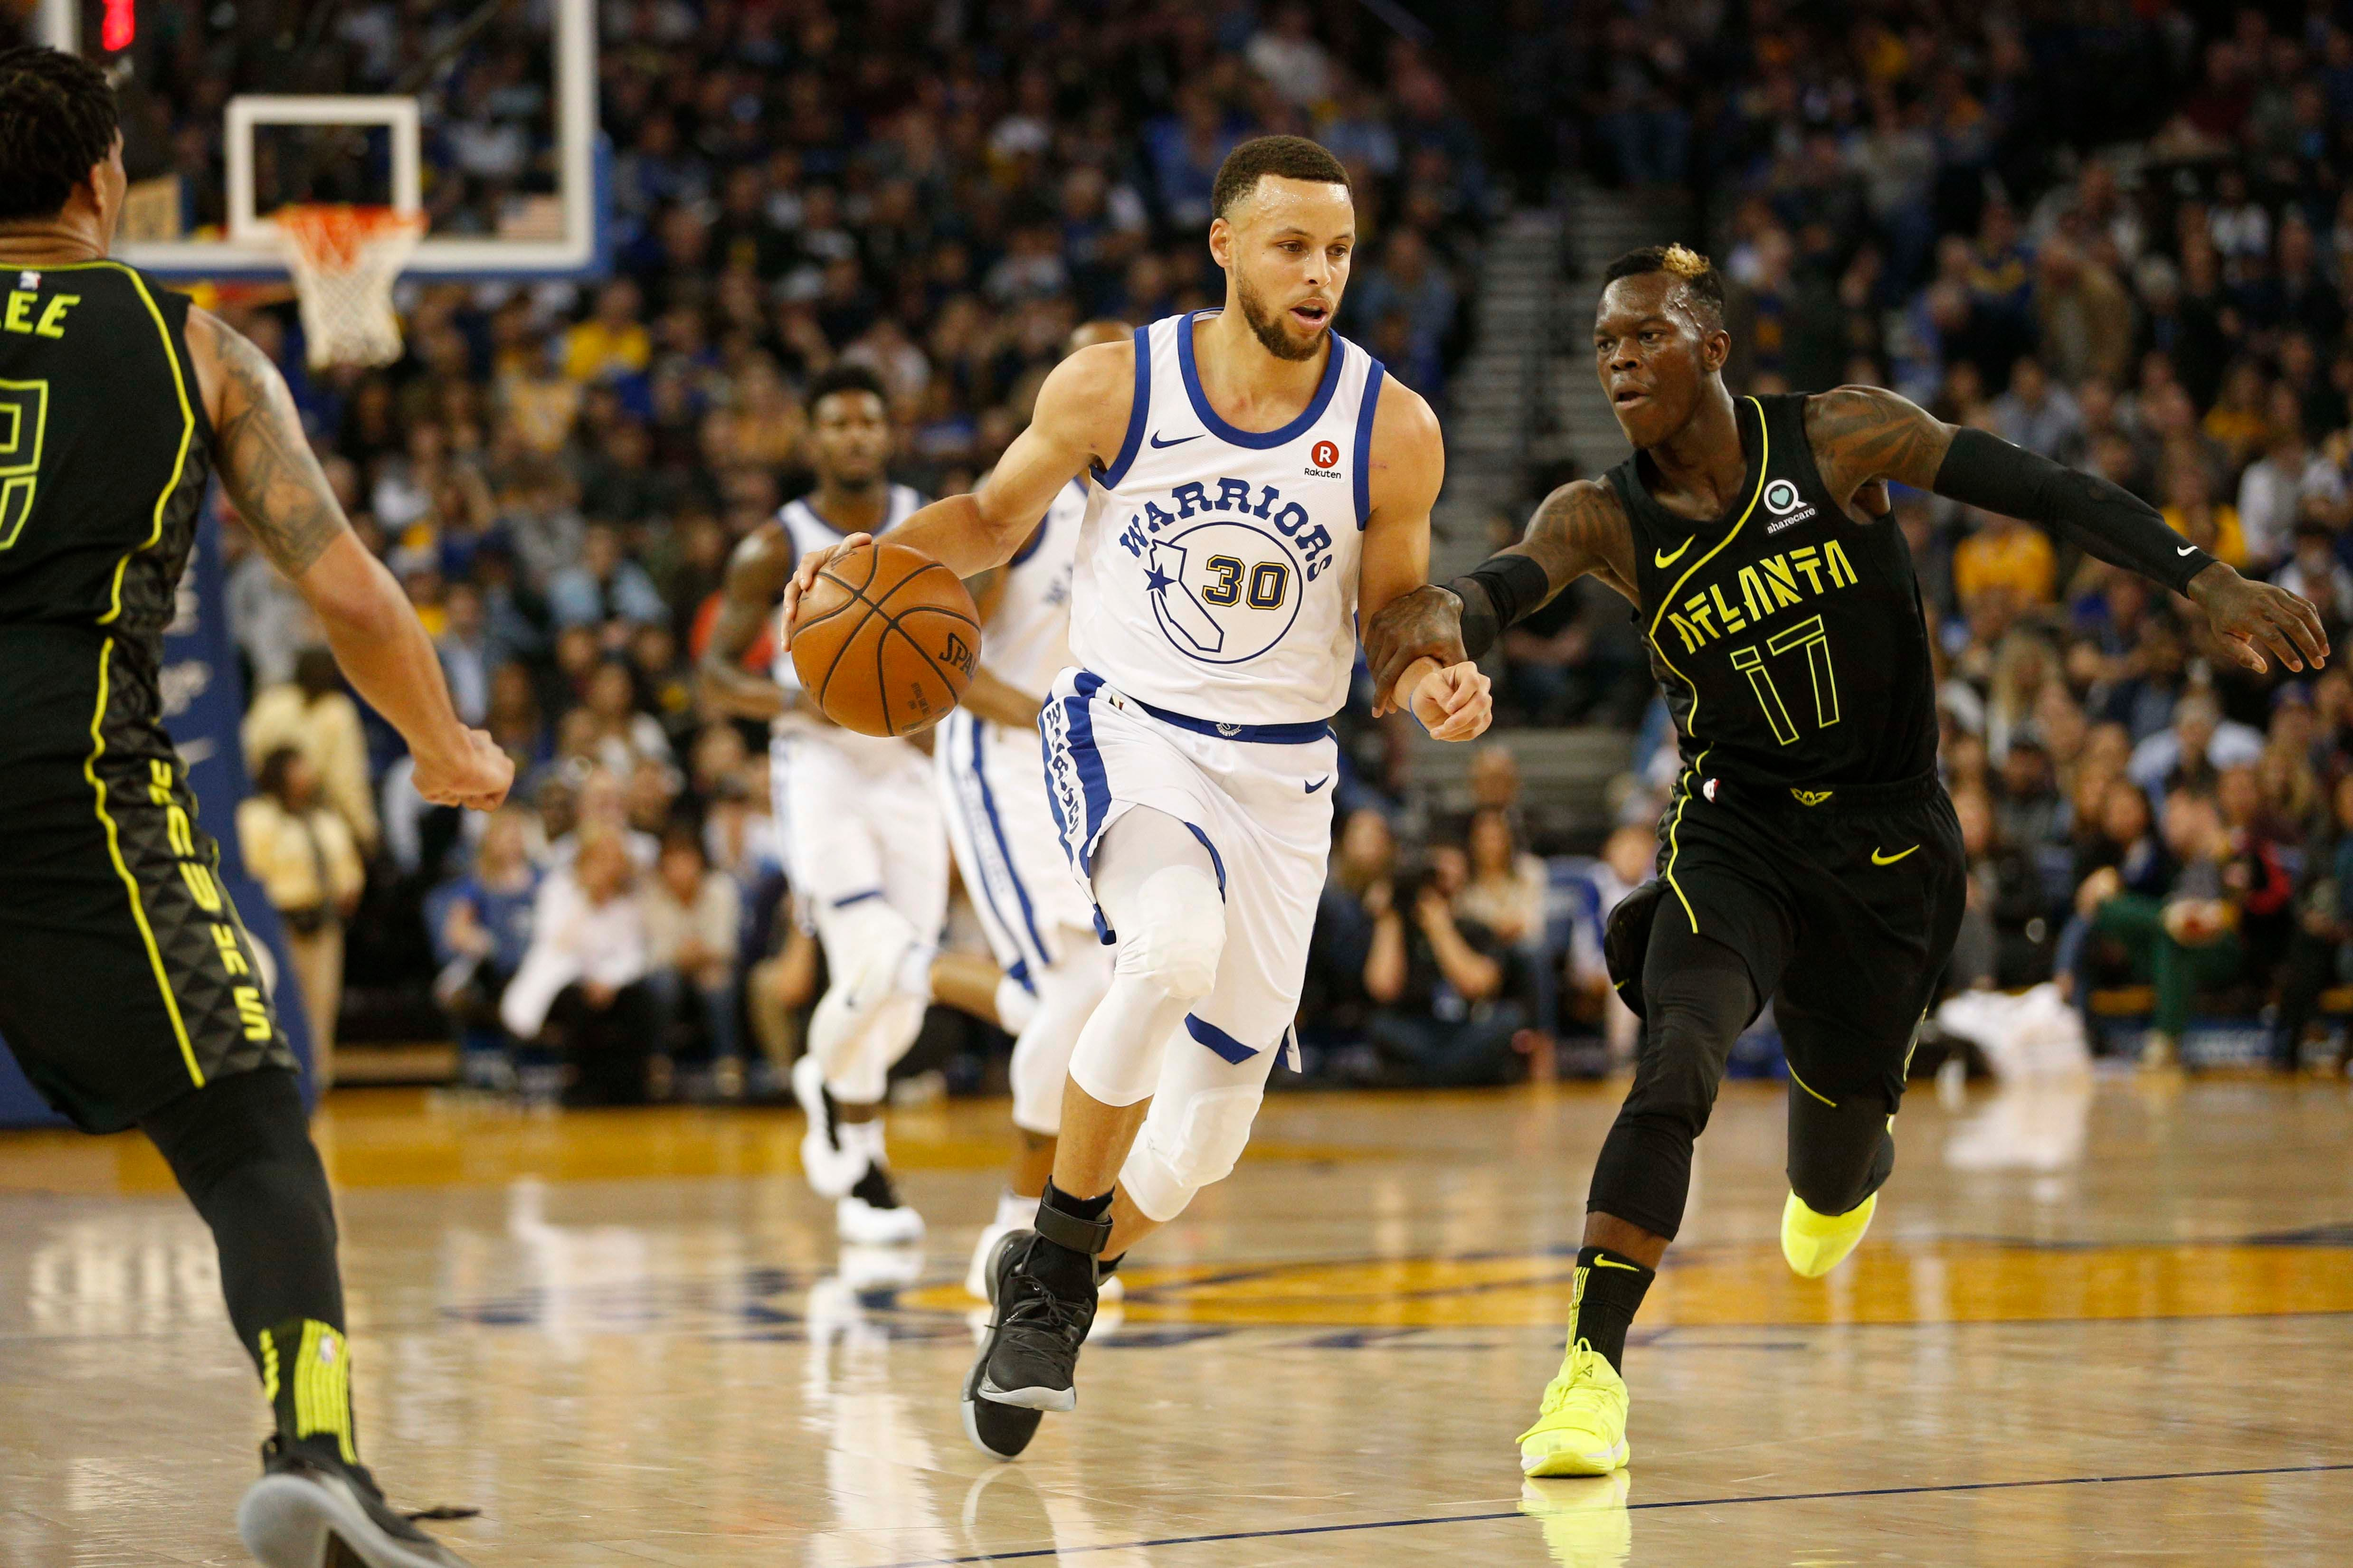 Warriors' Steph Curry latest NBA star to join media landscape with Sony deal